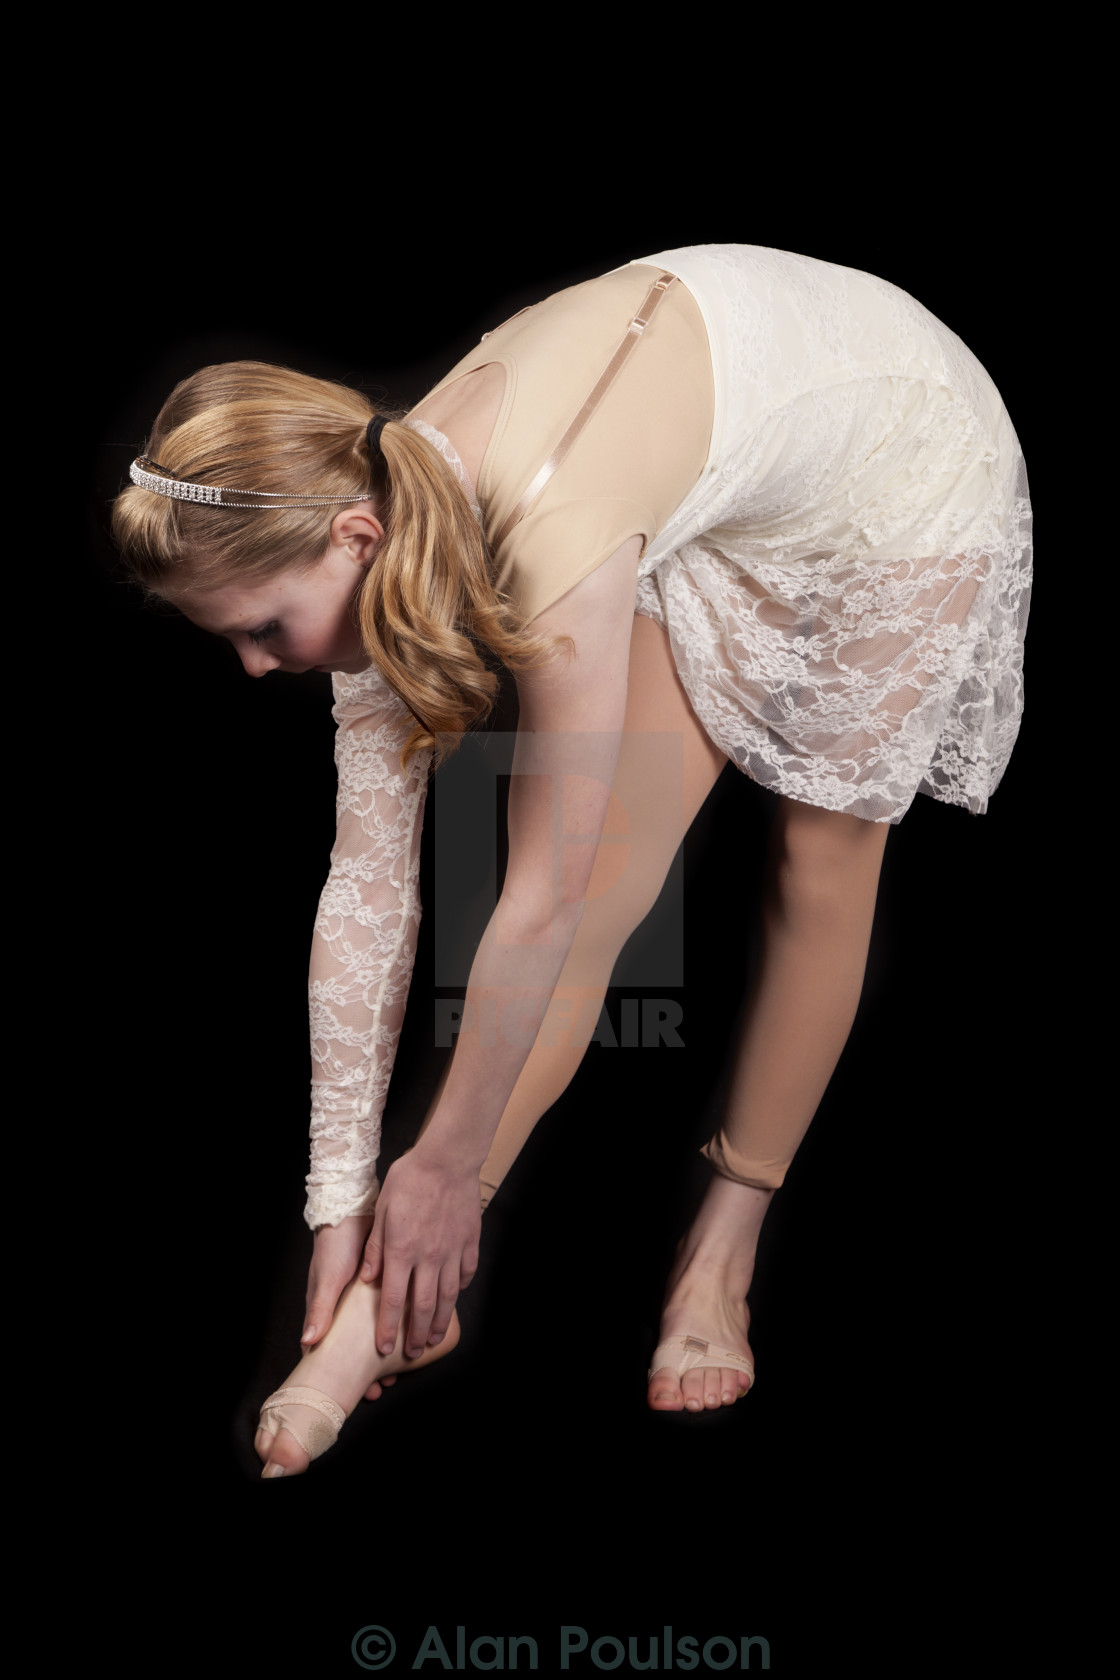 93ddebced4cf young girl dance bend down touch foot - License, download or print ...